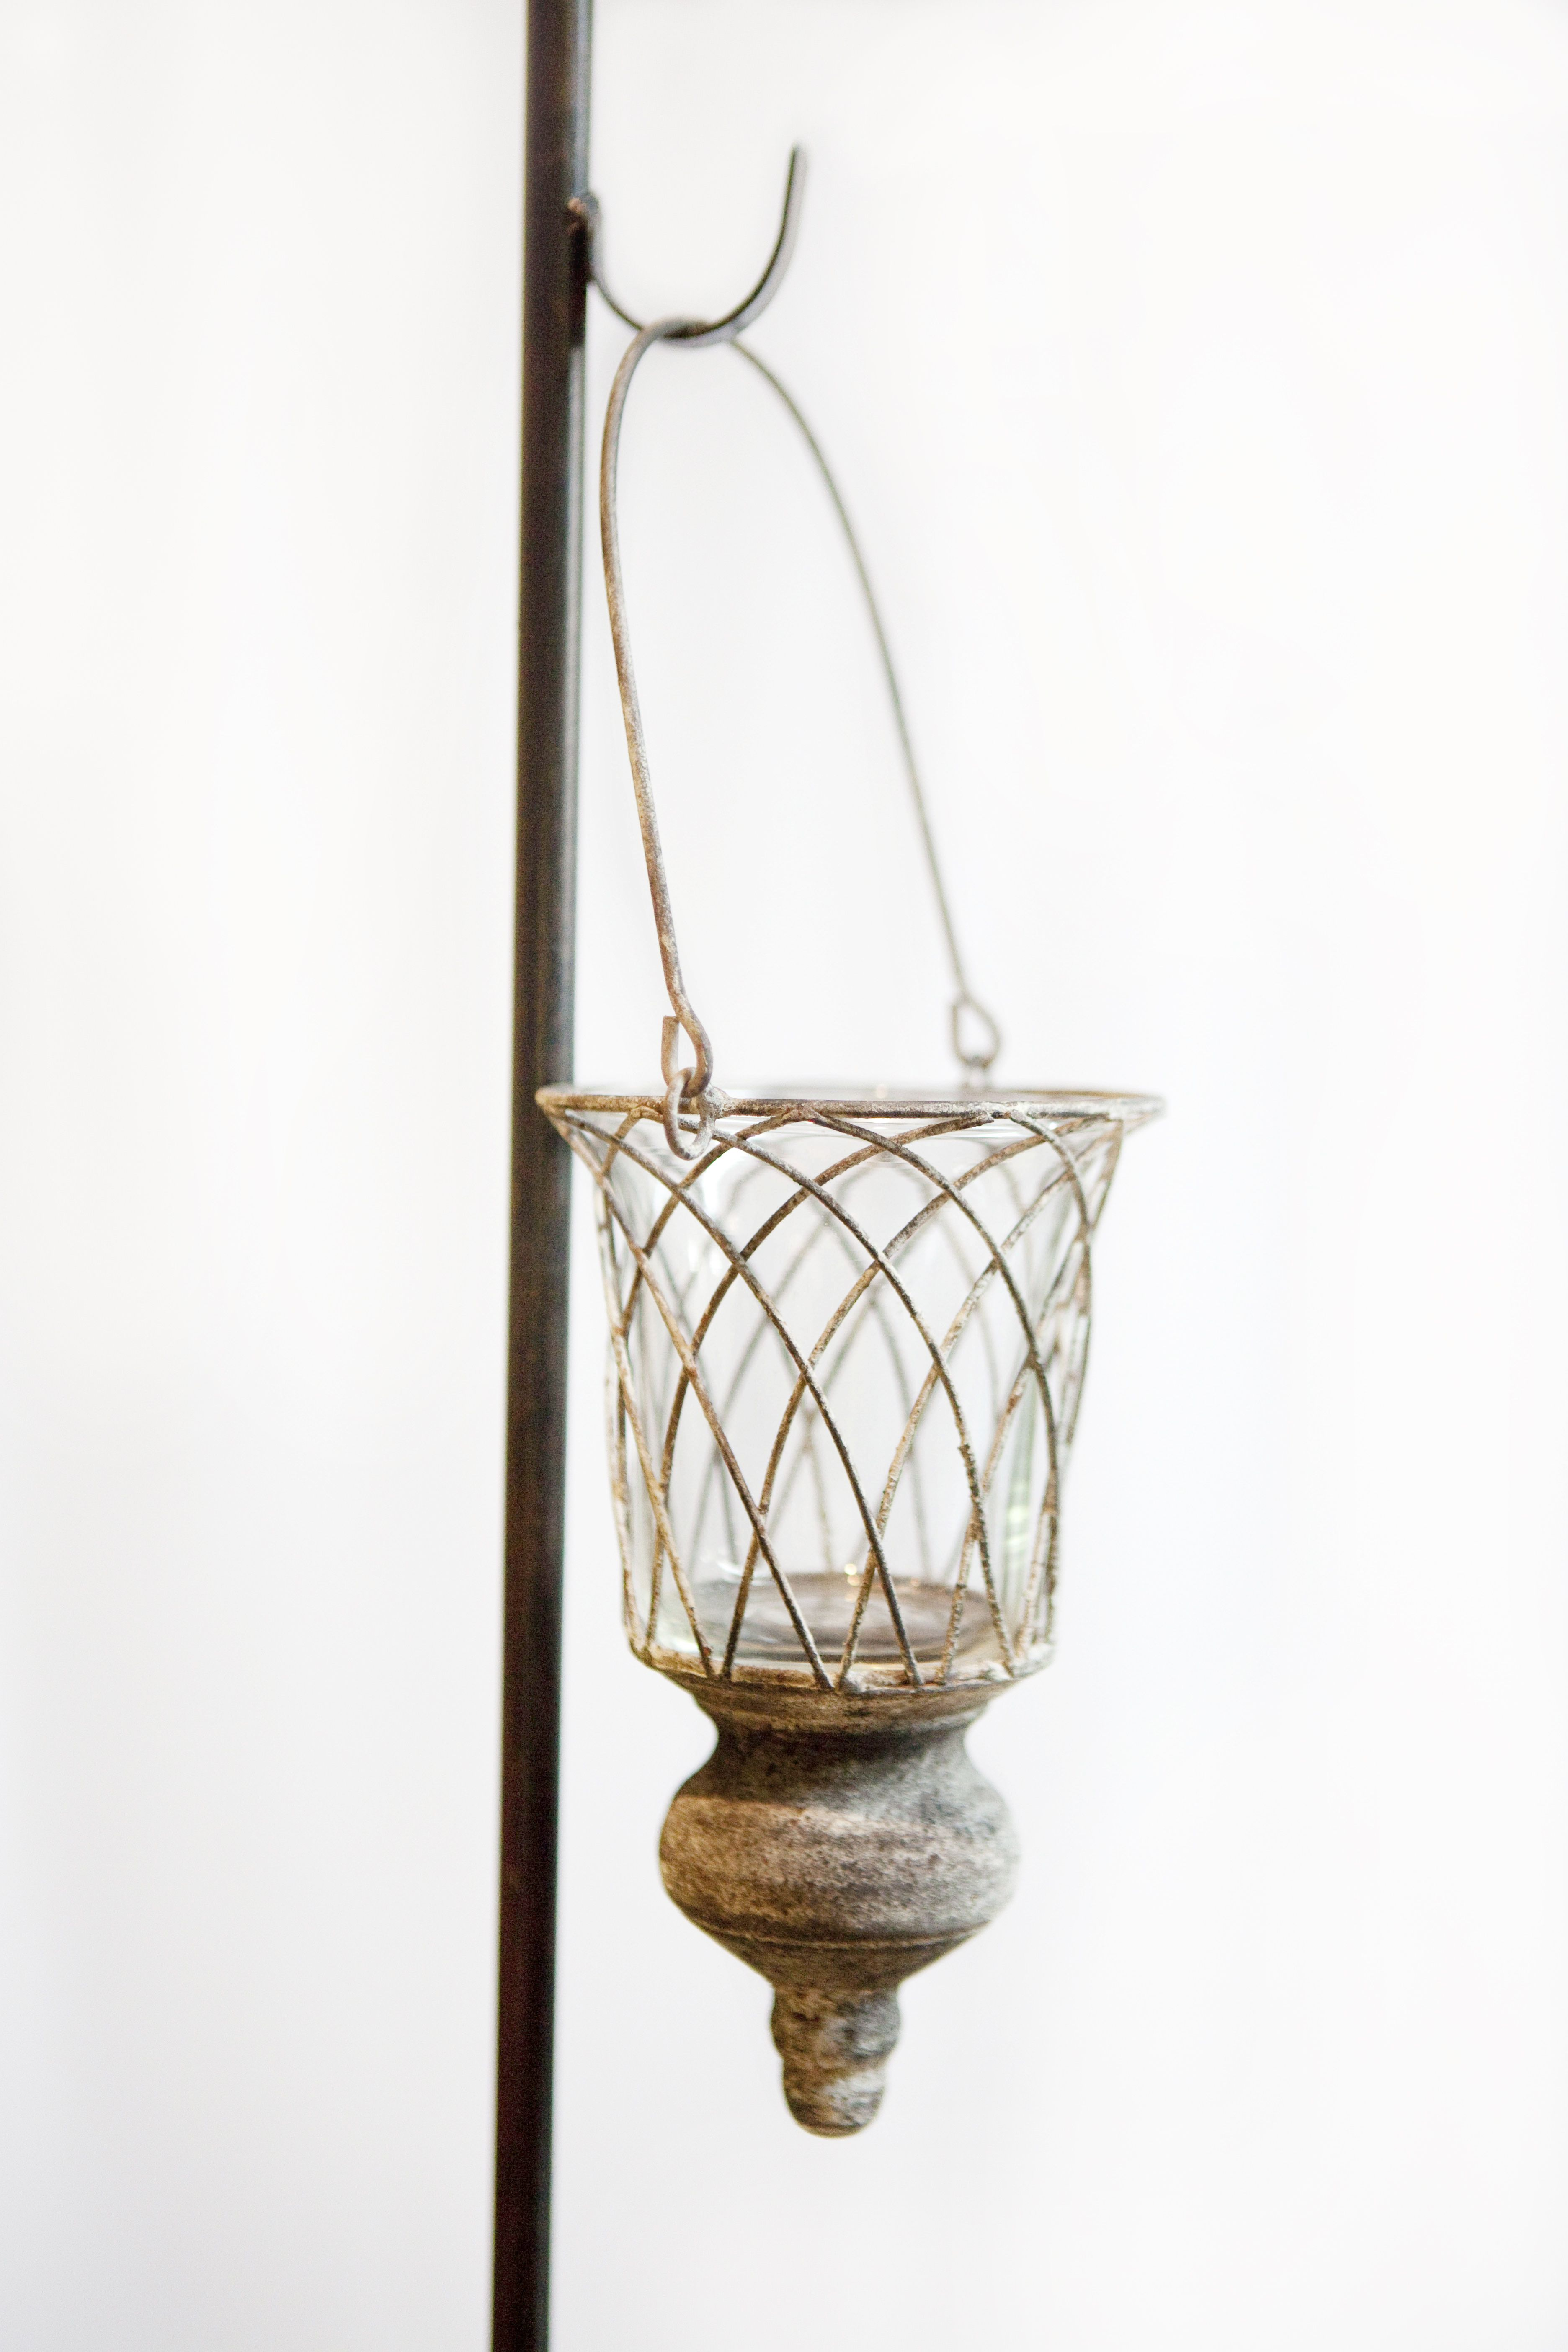 Aisle hanging vase rental is 4 6 available hanging